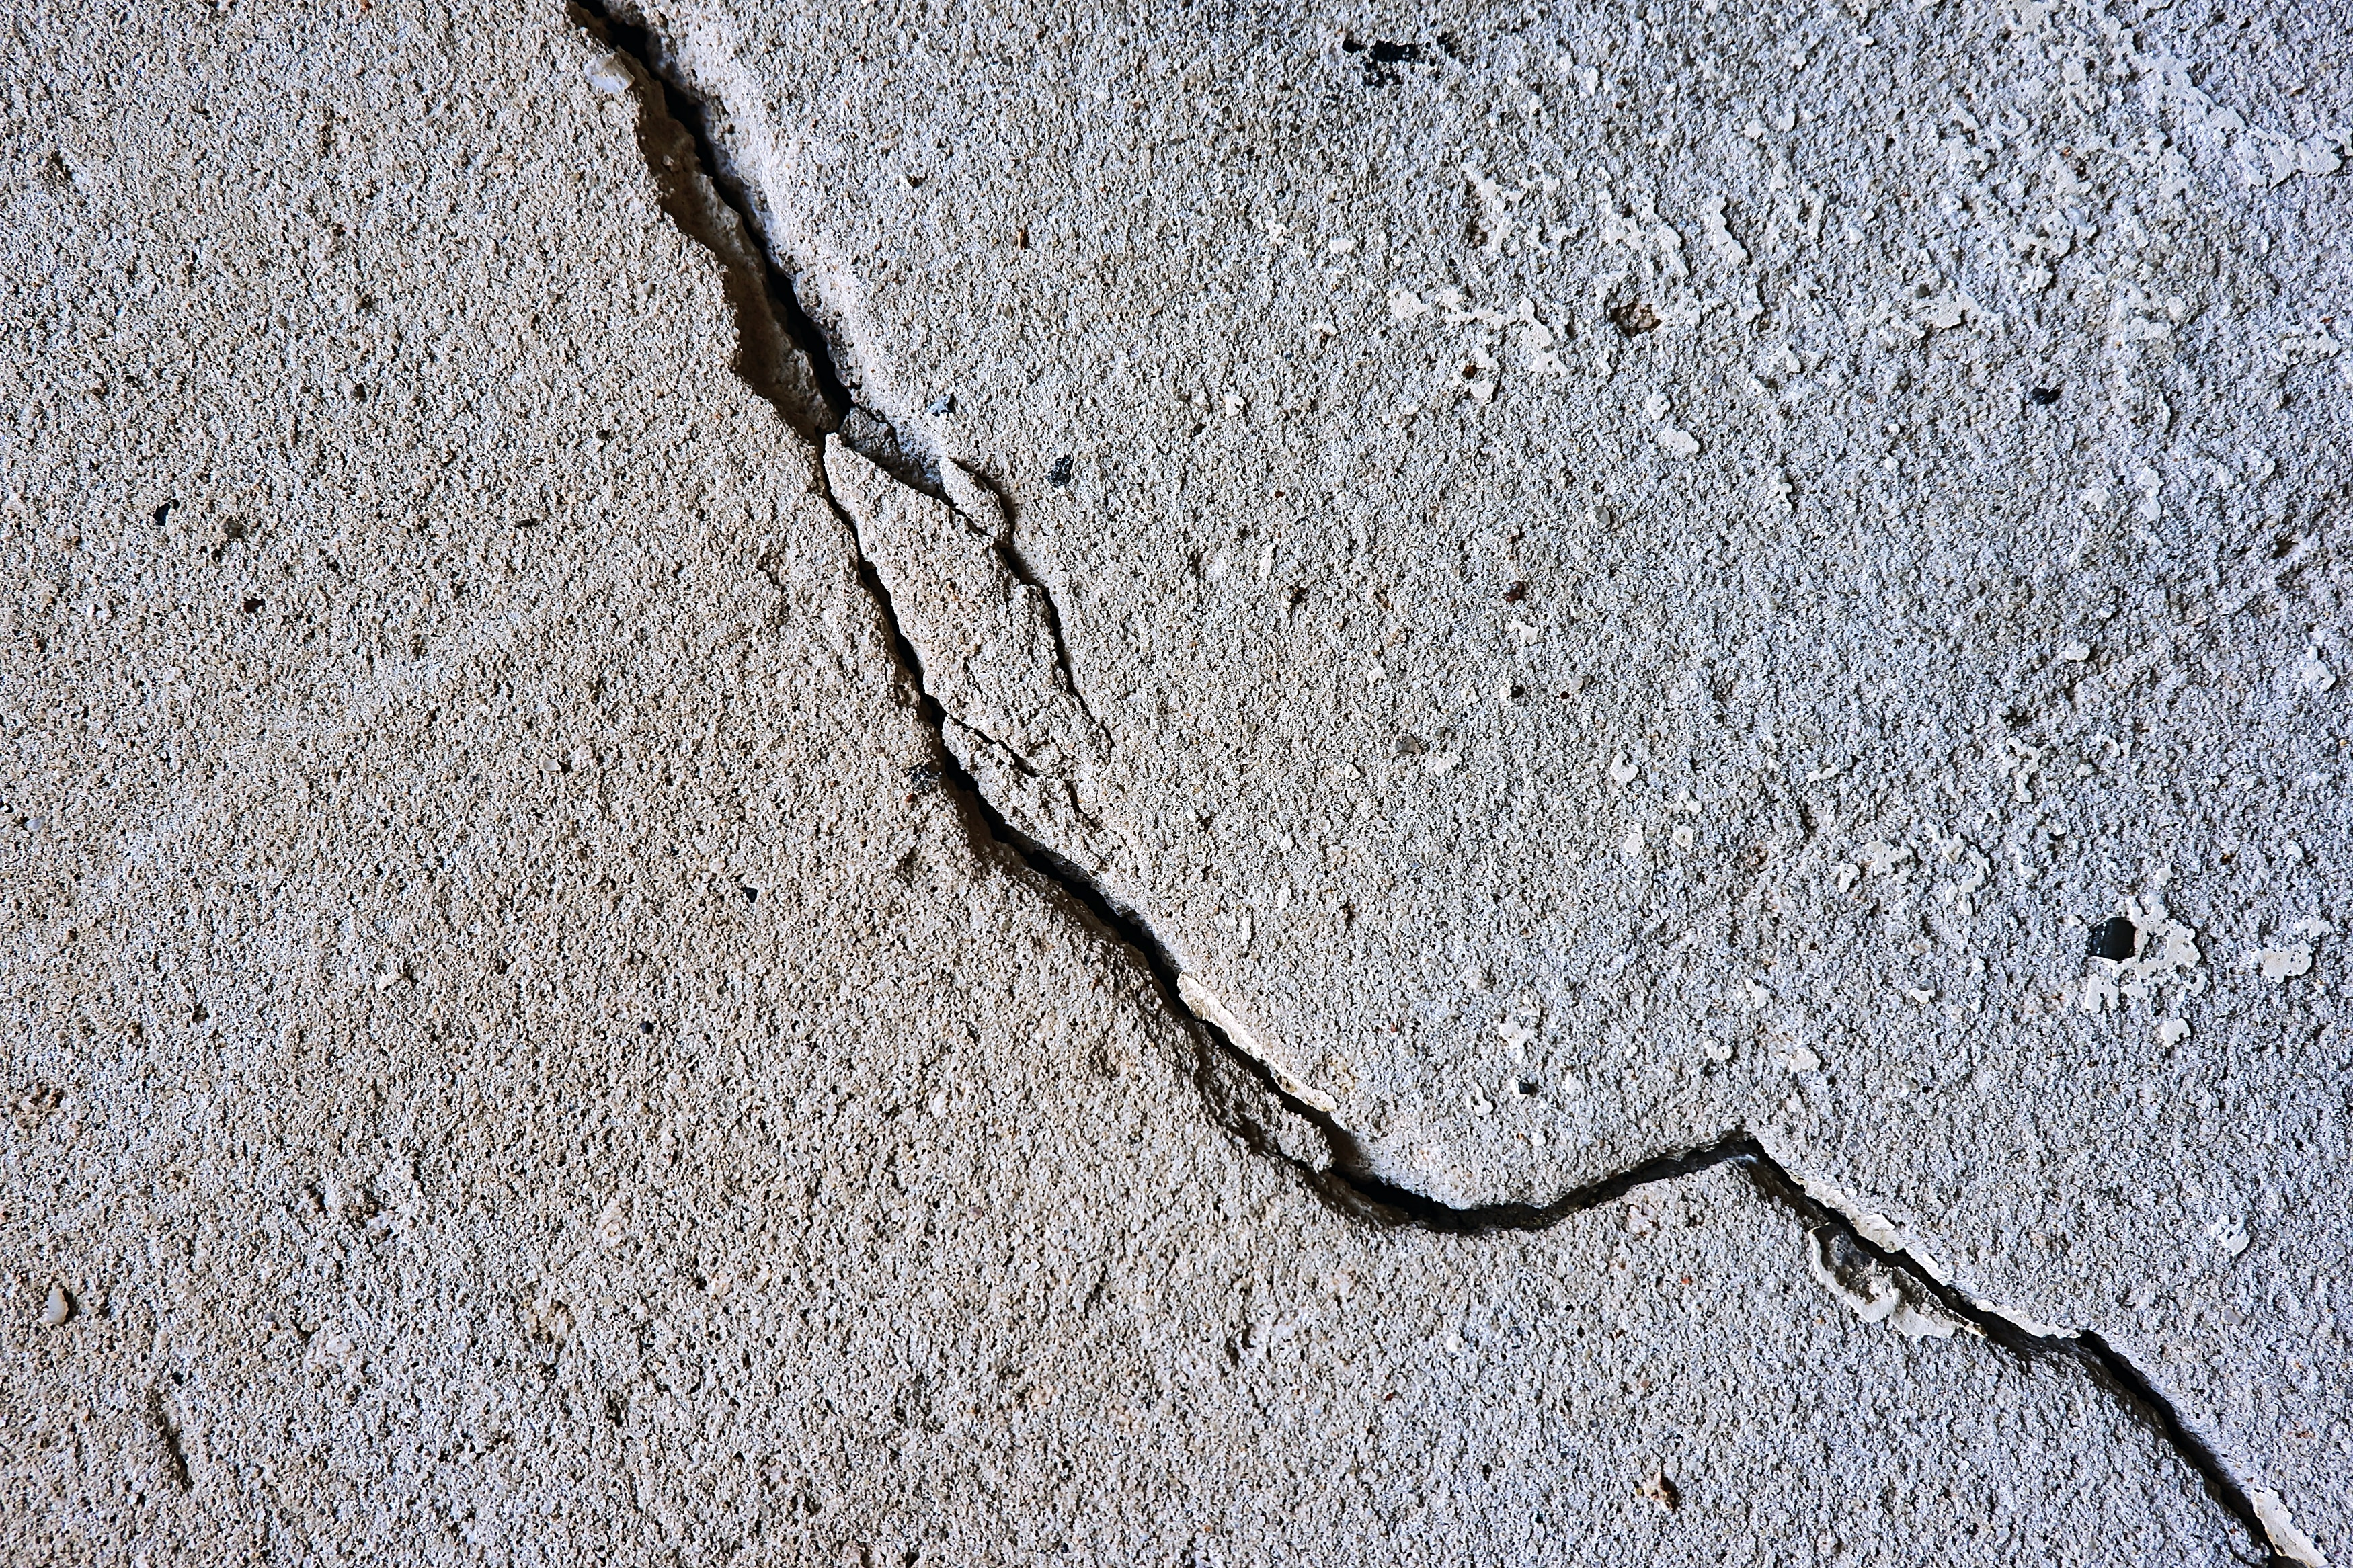 Crack in earth